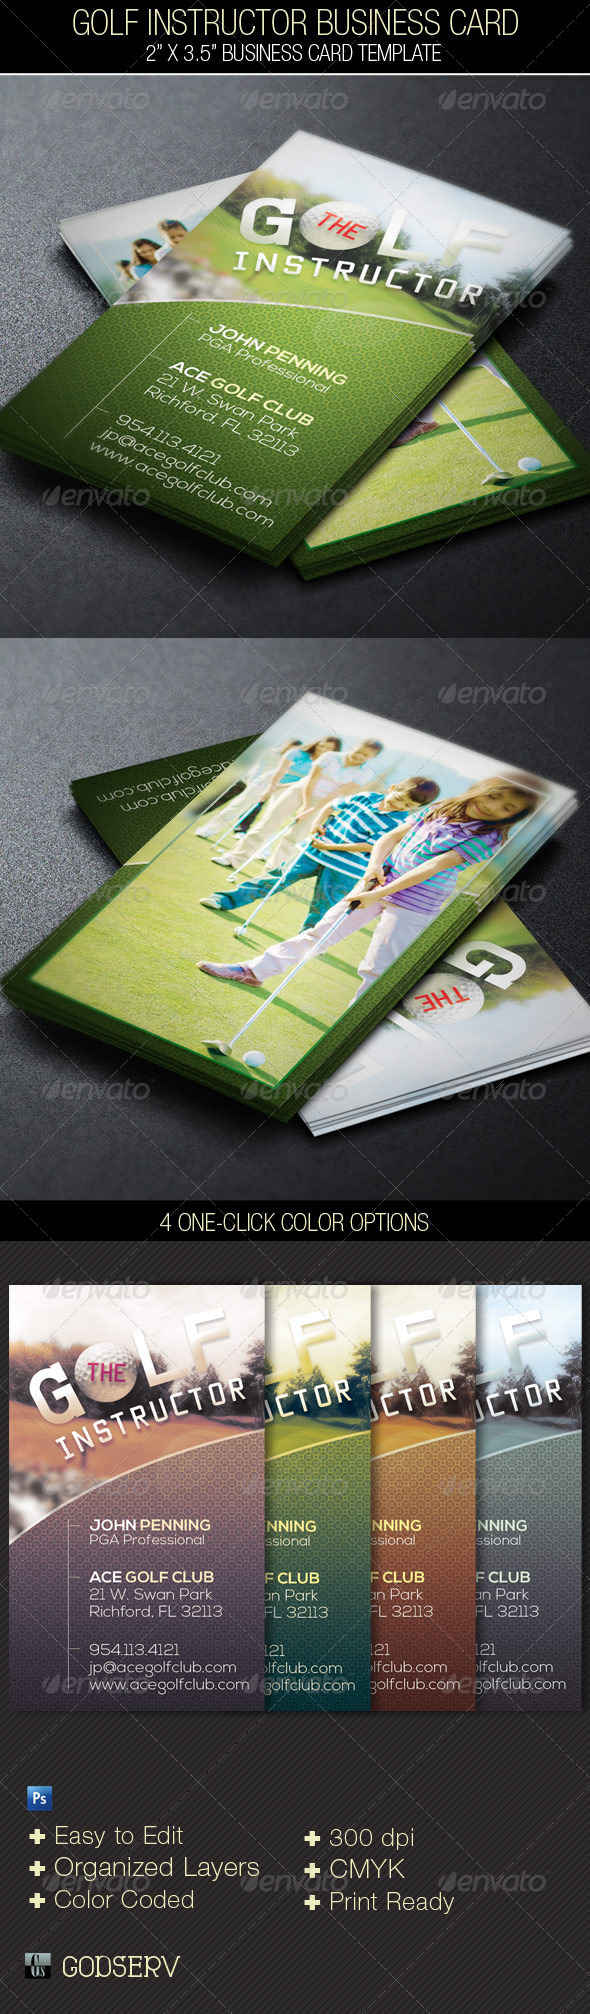 Golf Instructor Business Card Template on Behance